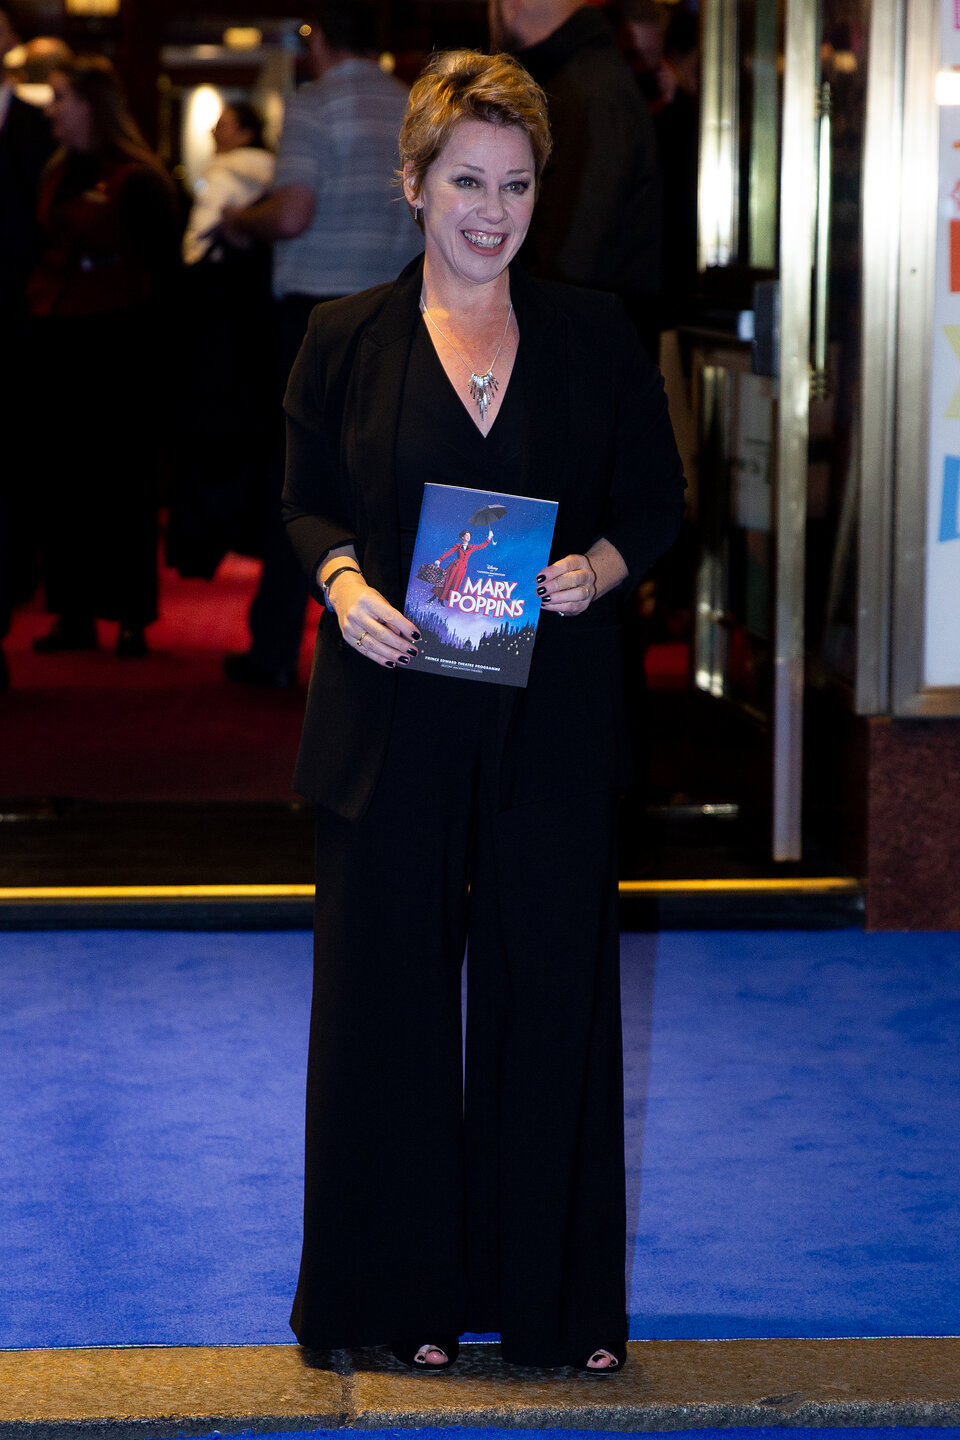 Mary Poppins Gala Performance - London